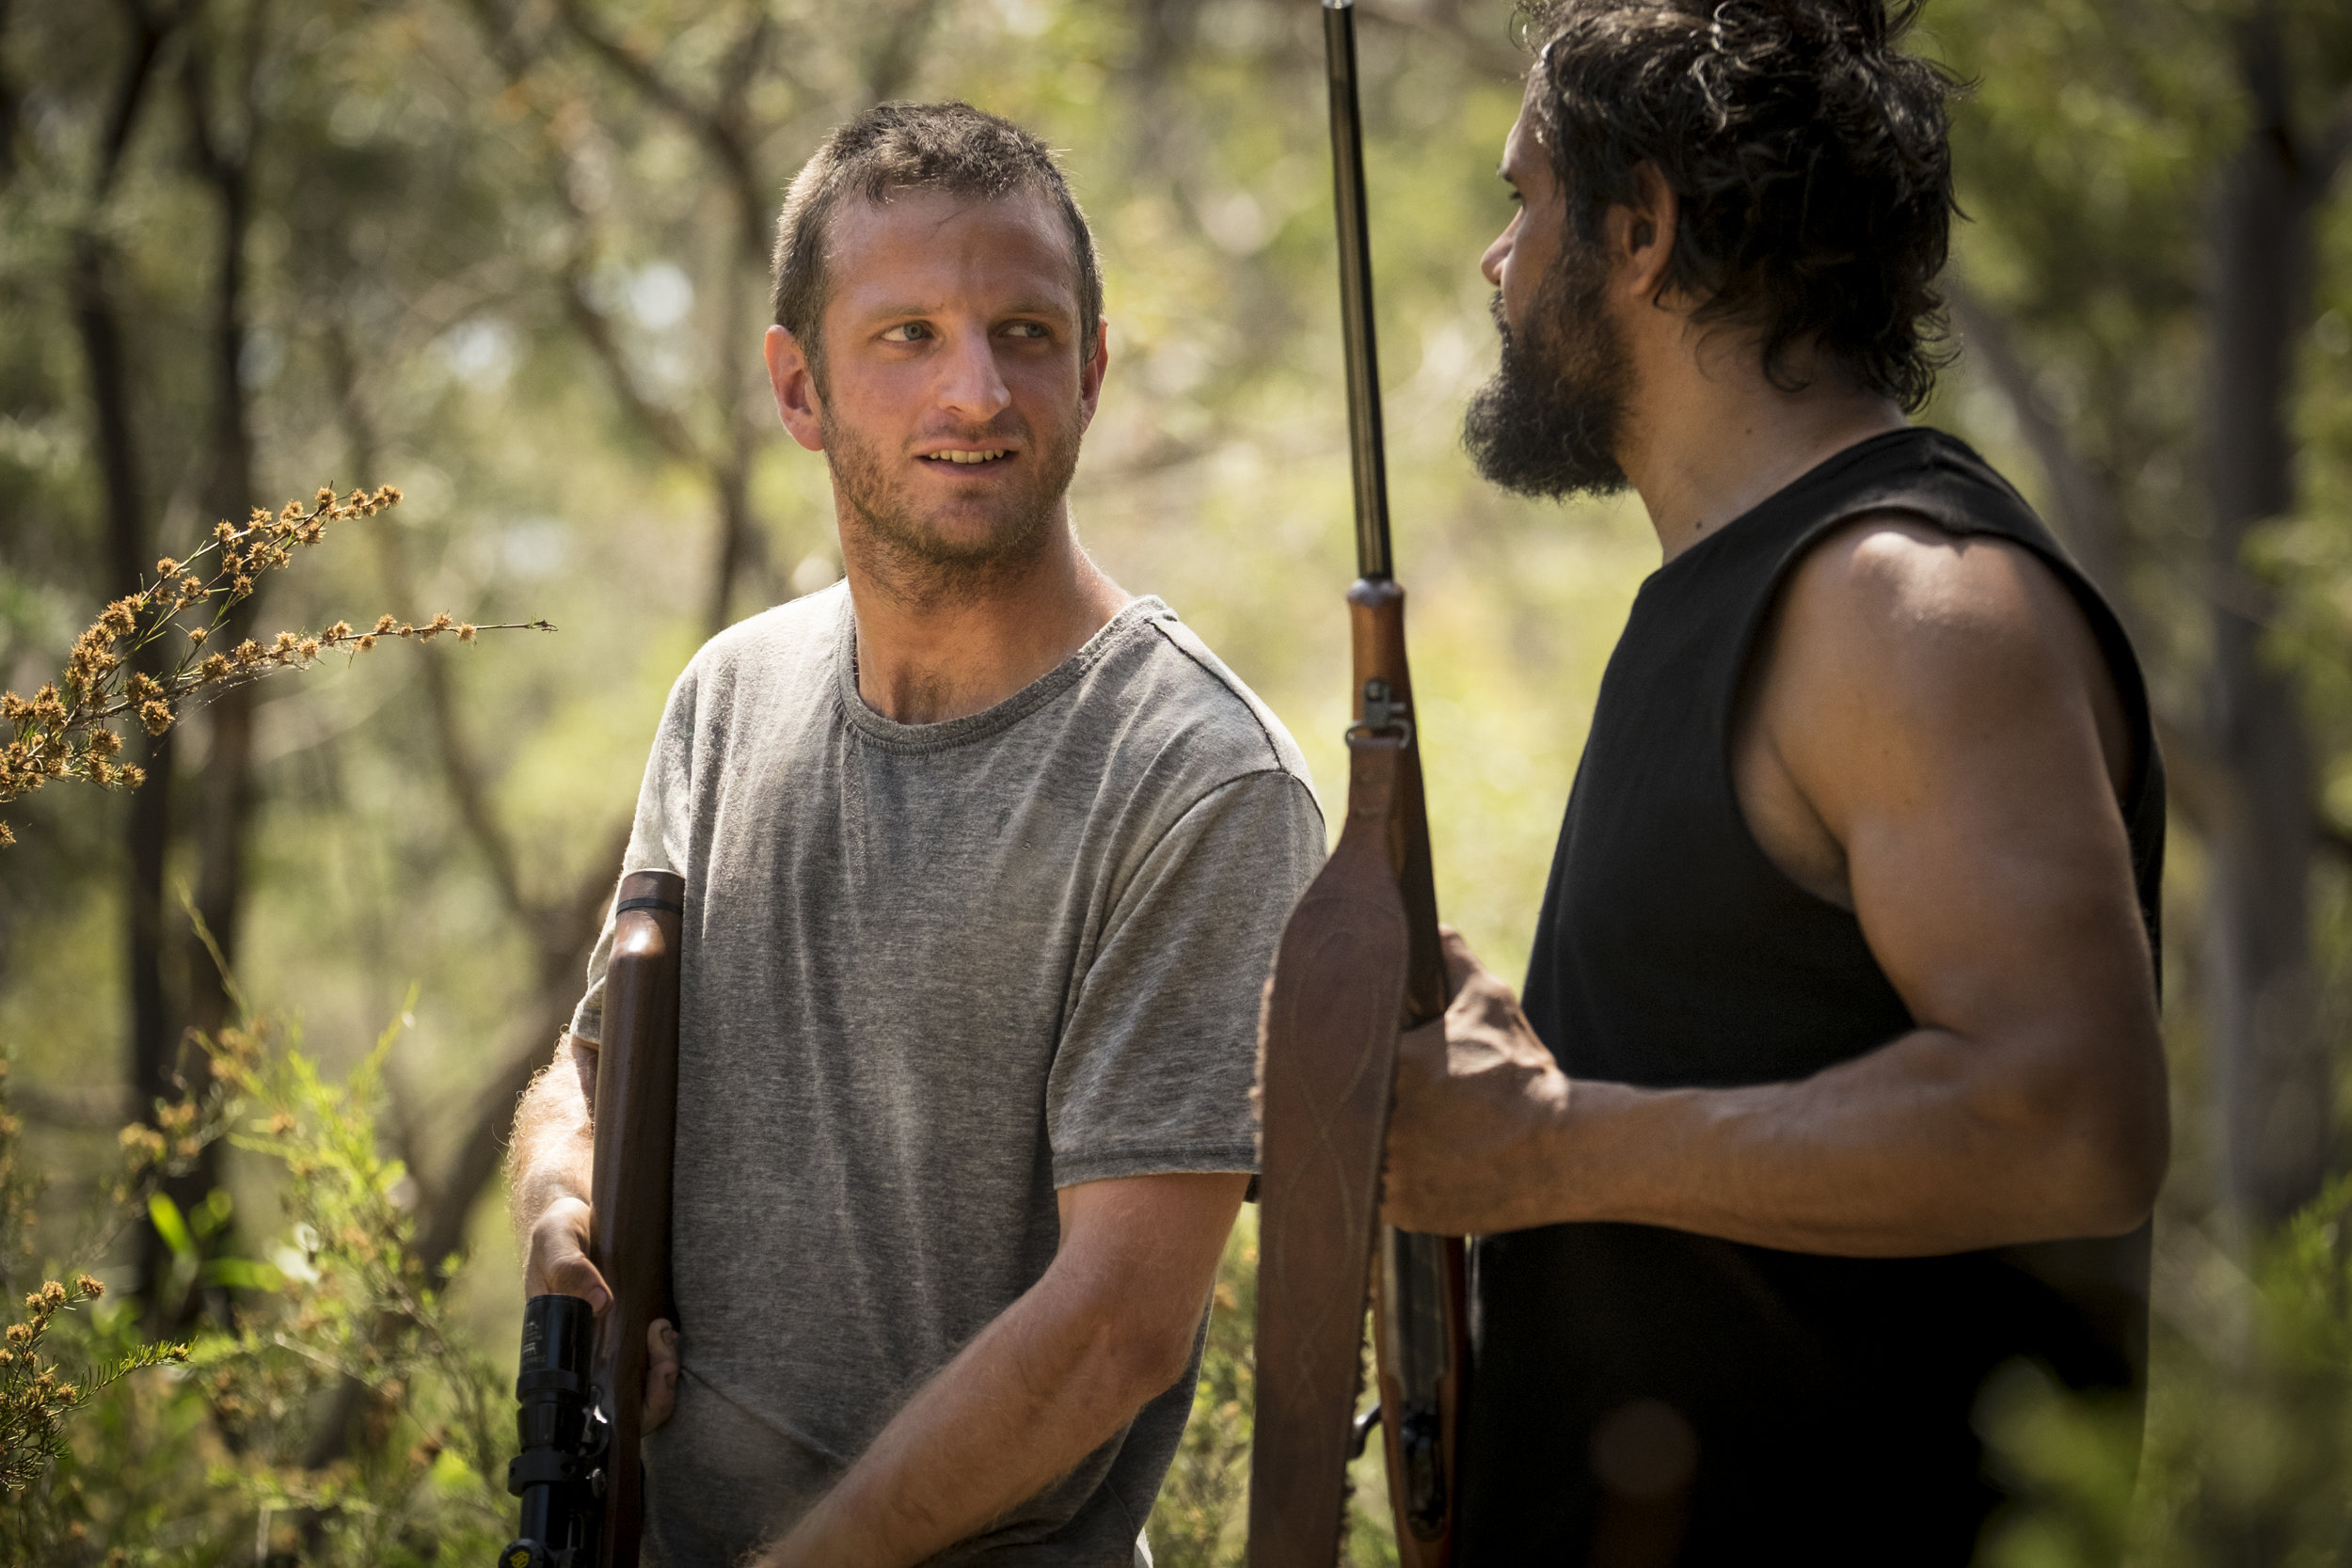 Aaron Glennane (Chook) and Aaron Pederson (German) in Killing Ground.